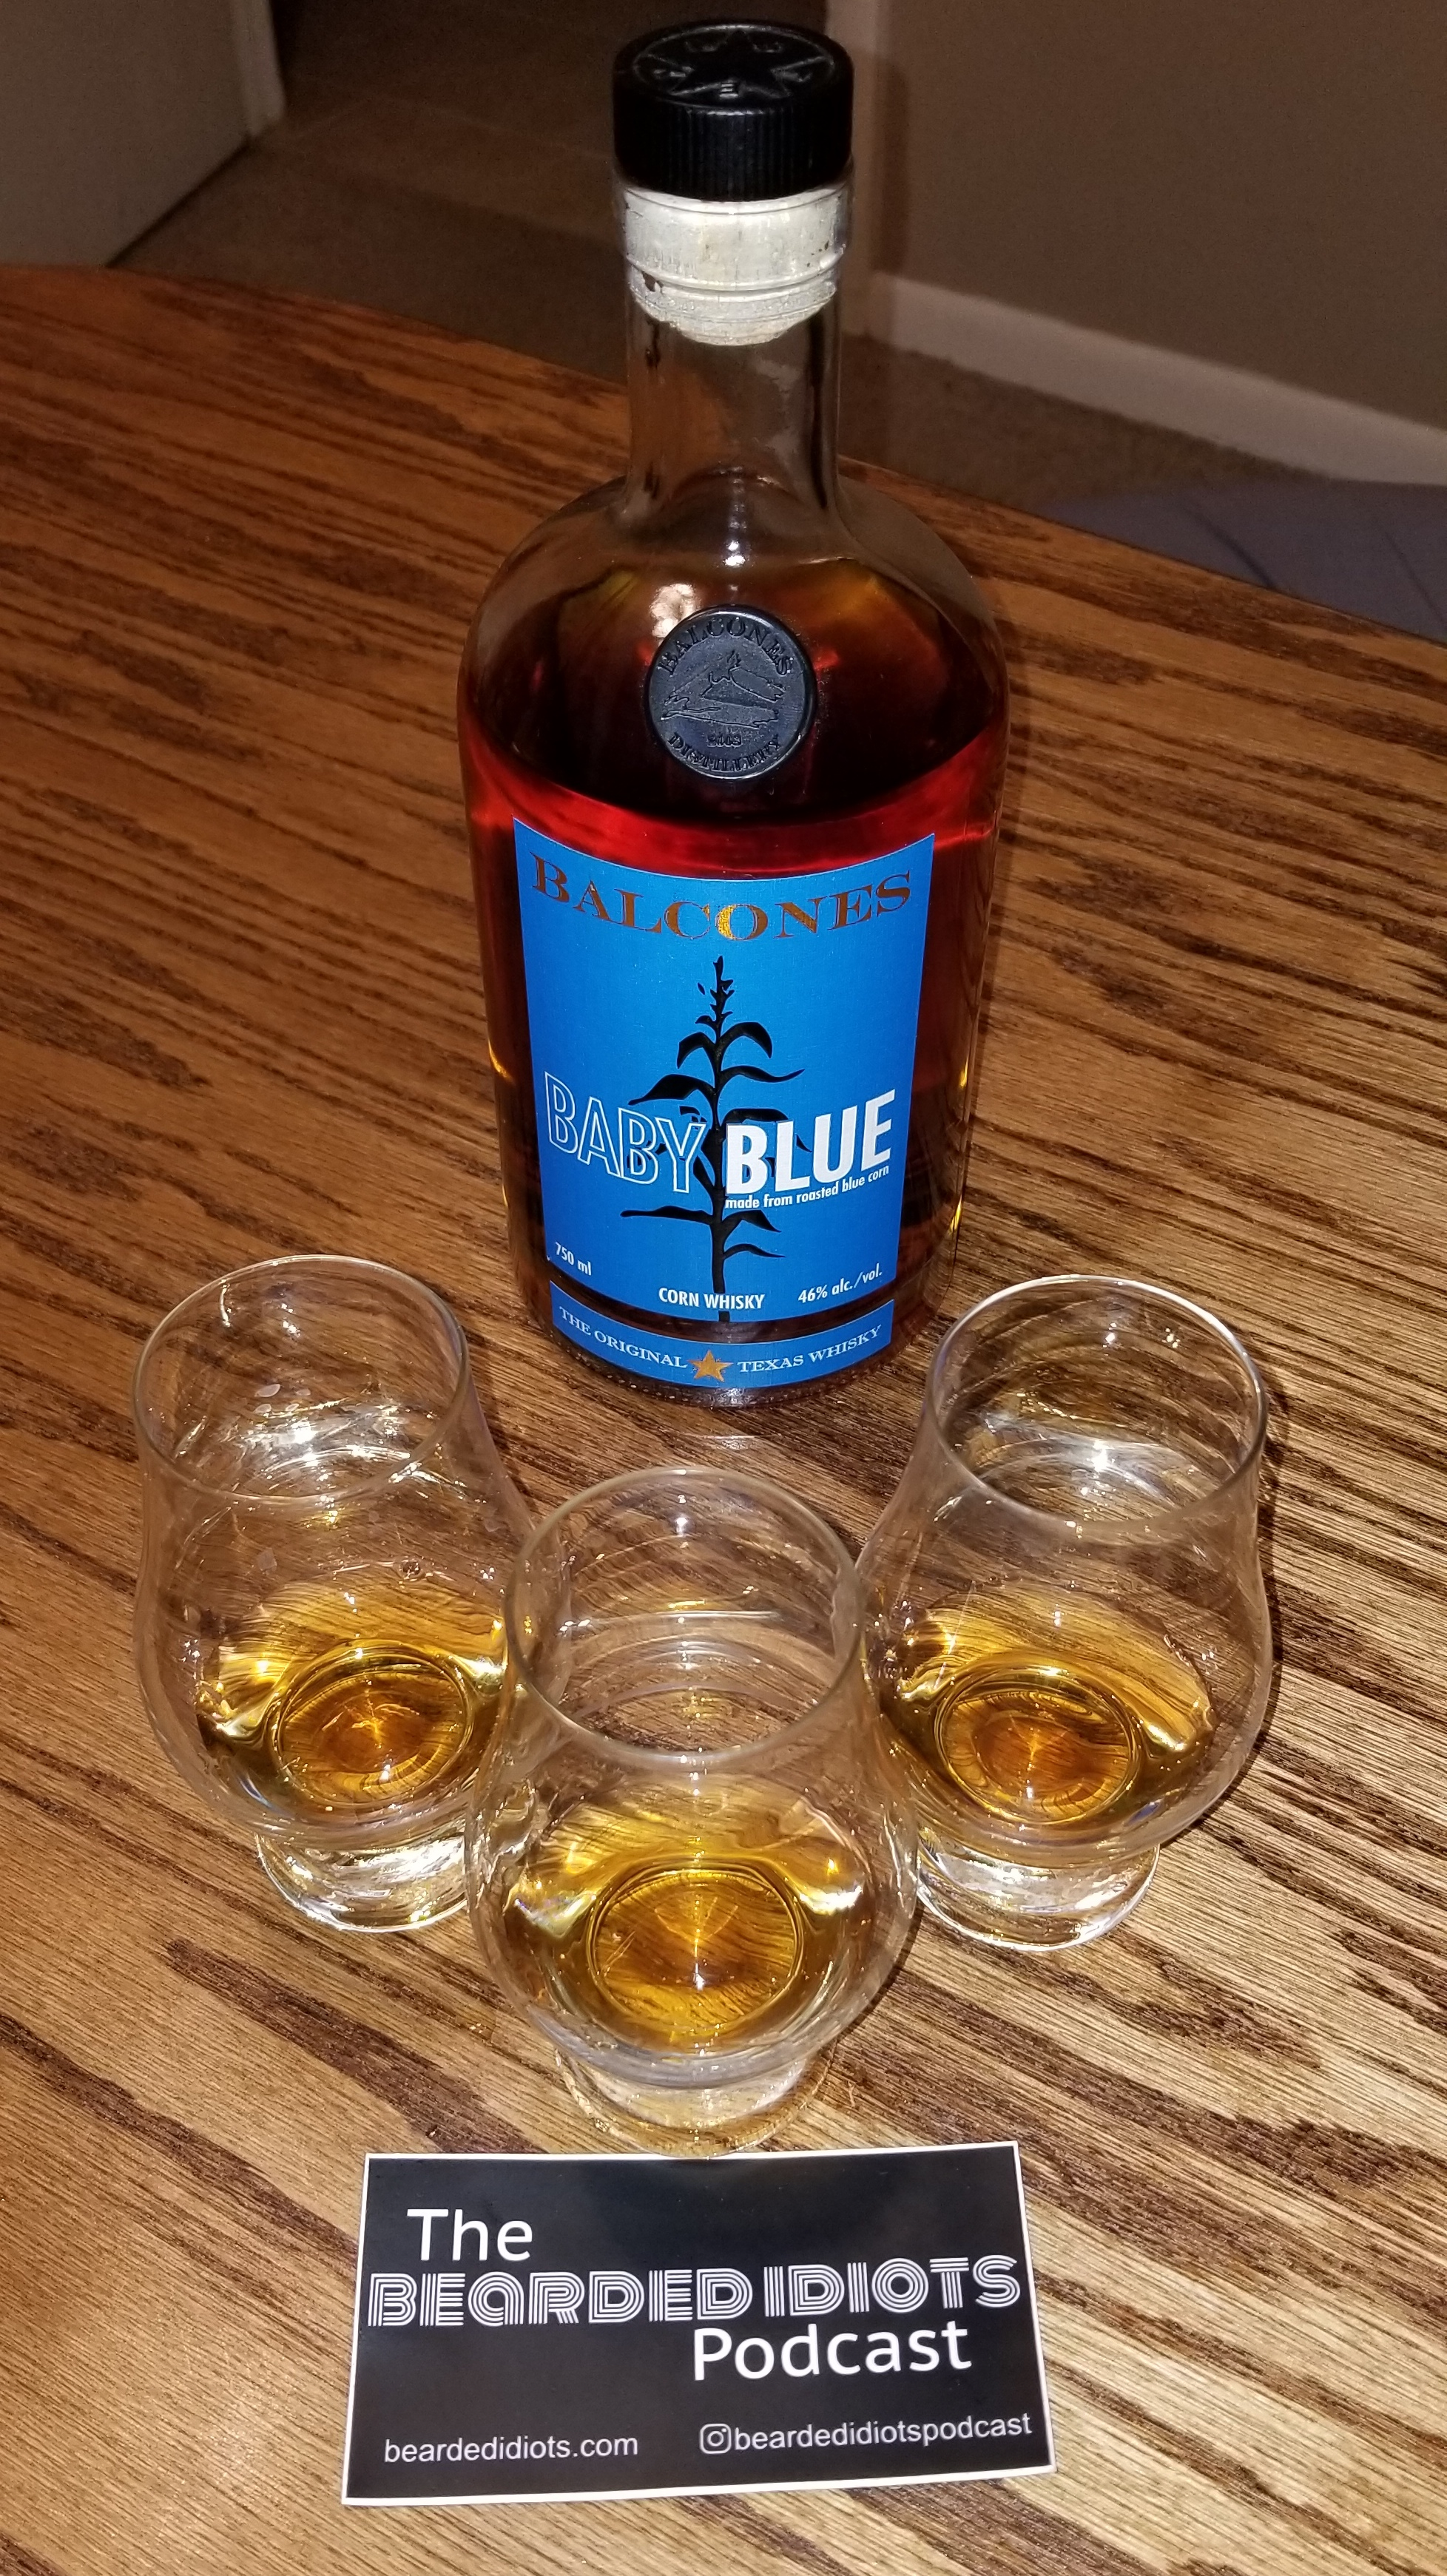 Episode the 22nd - A whisky review, WWE/WWF talk, military dress and alpha code, and back in the old days…